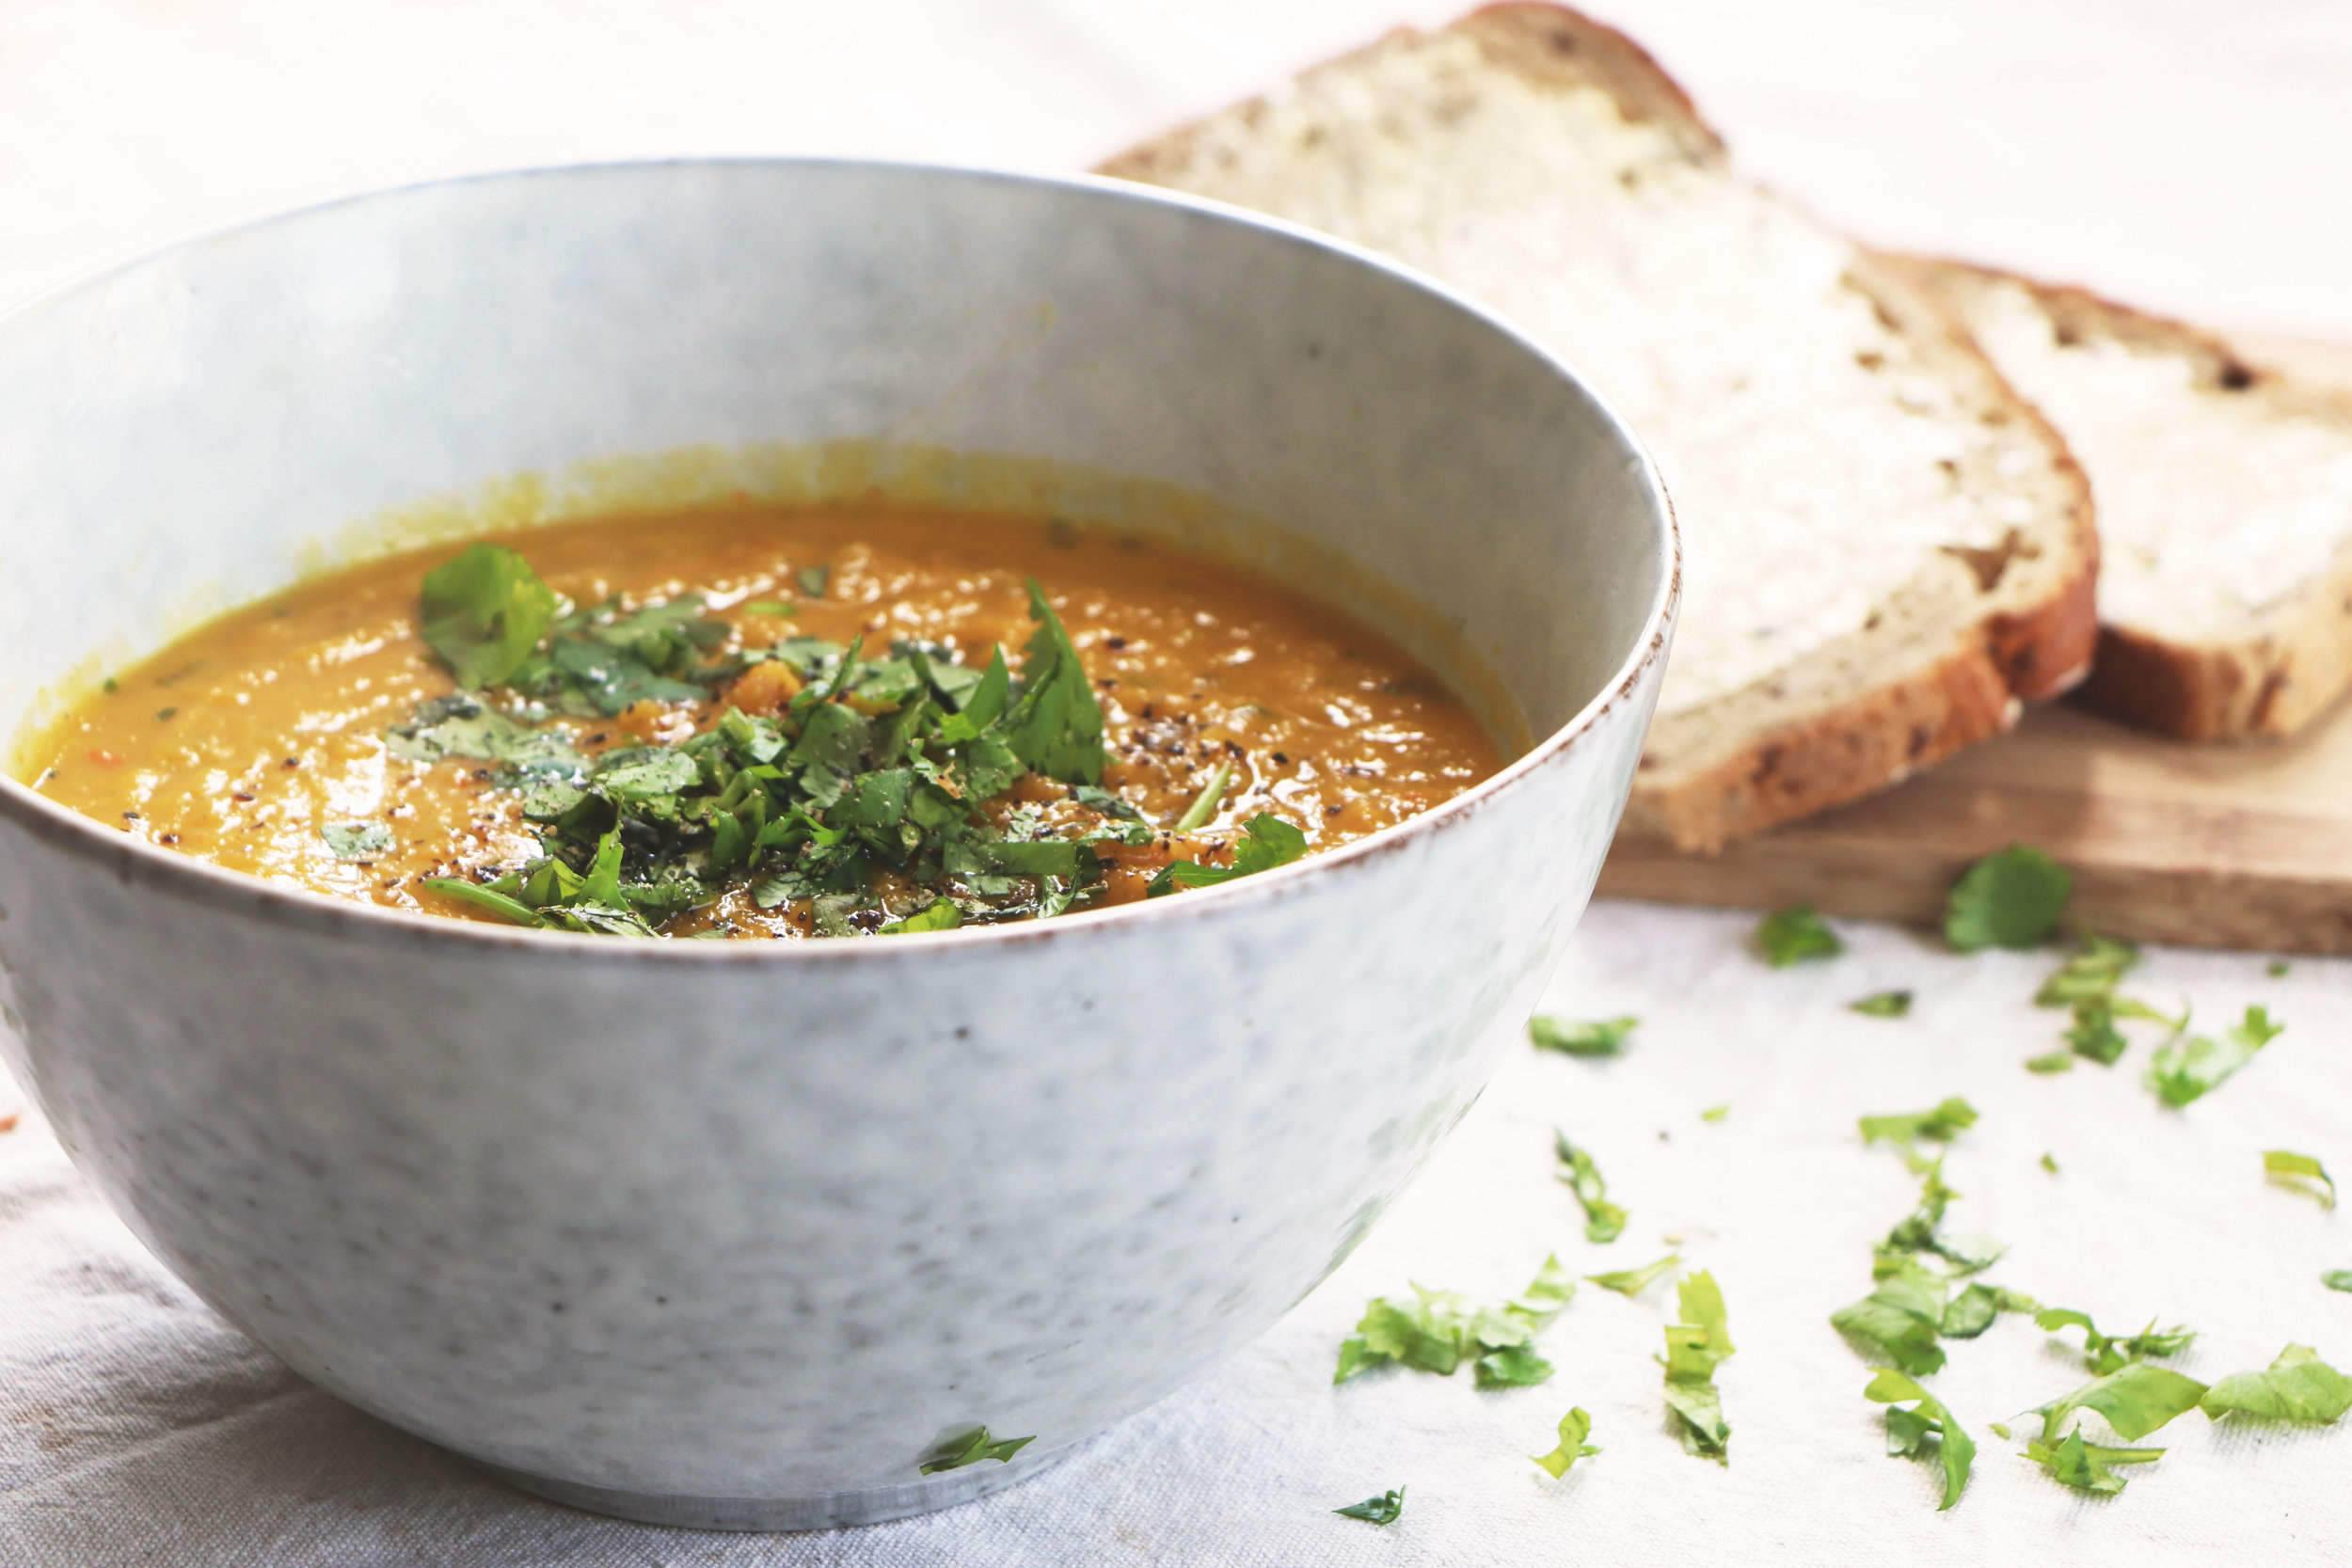 Sweet, creamy and warming, you'll be making this soup time and time again. - prep time 5 mins    total time 20 mins     serves 4-6